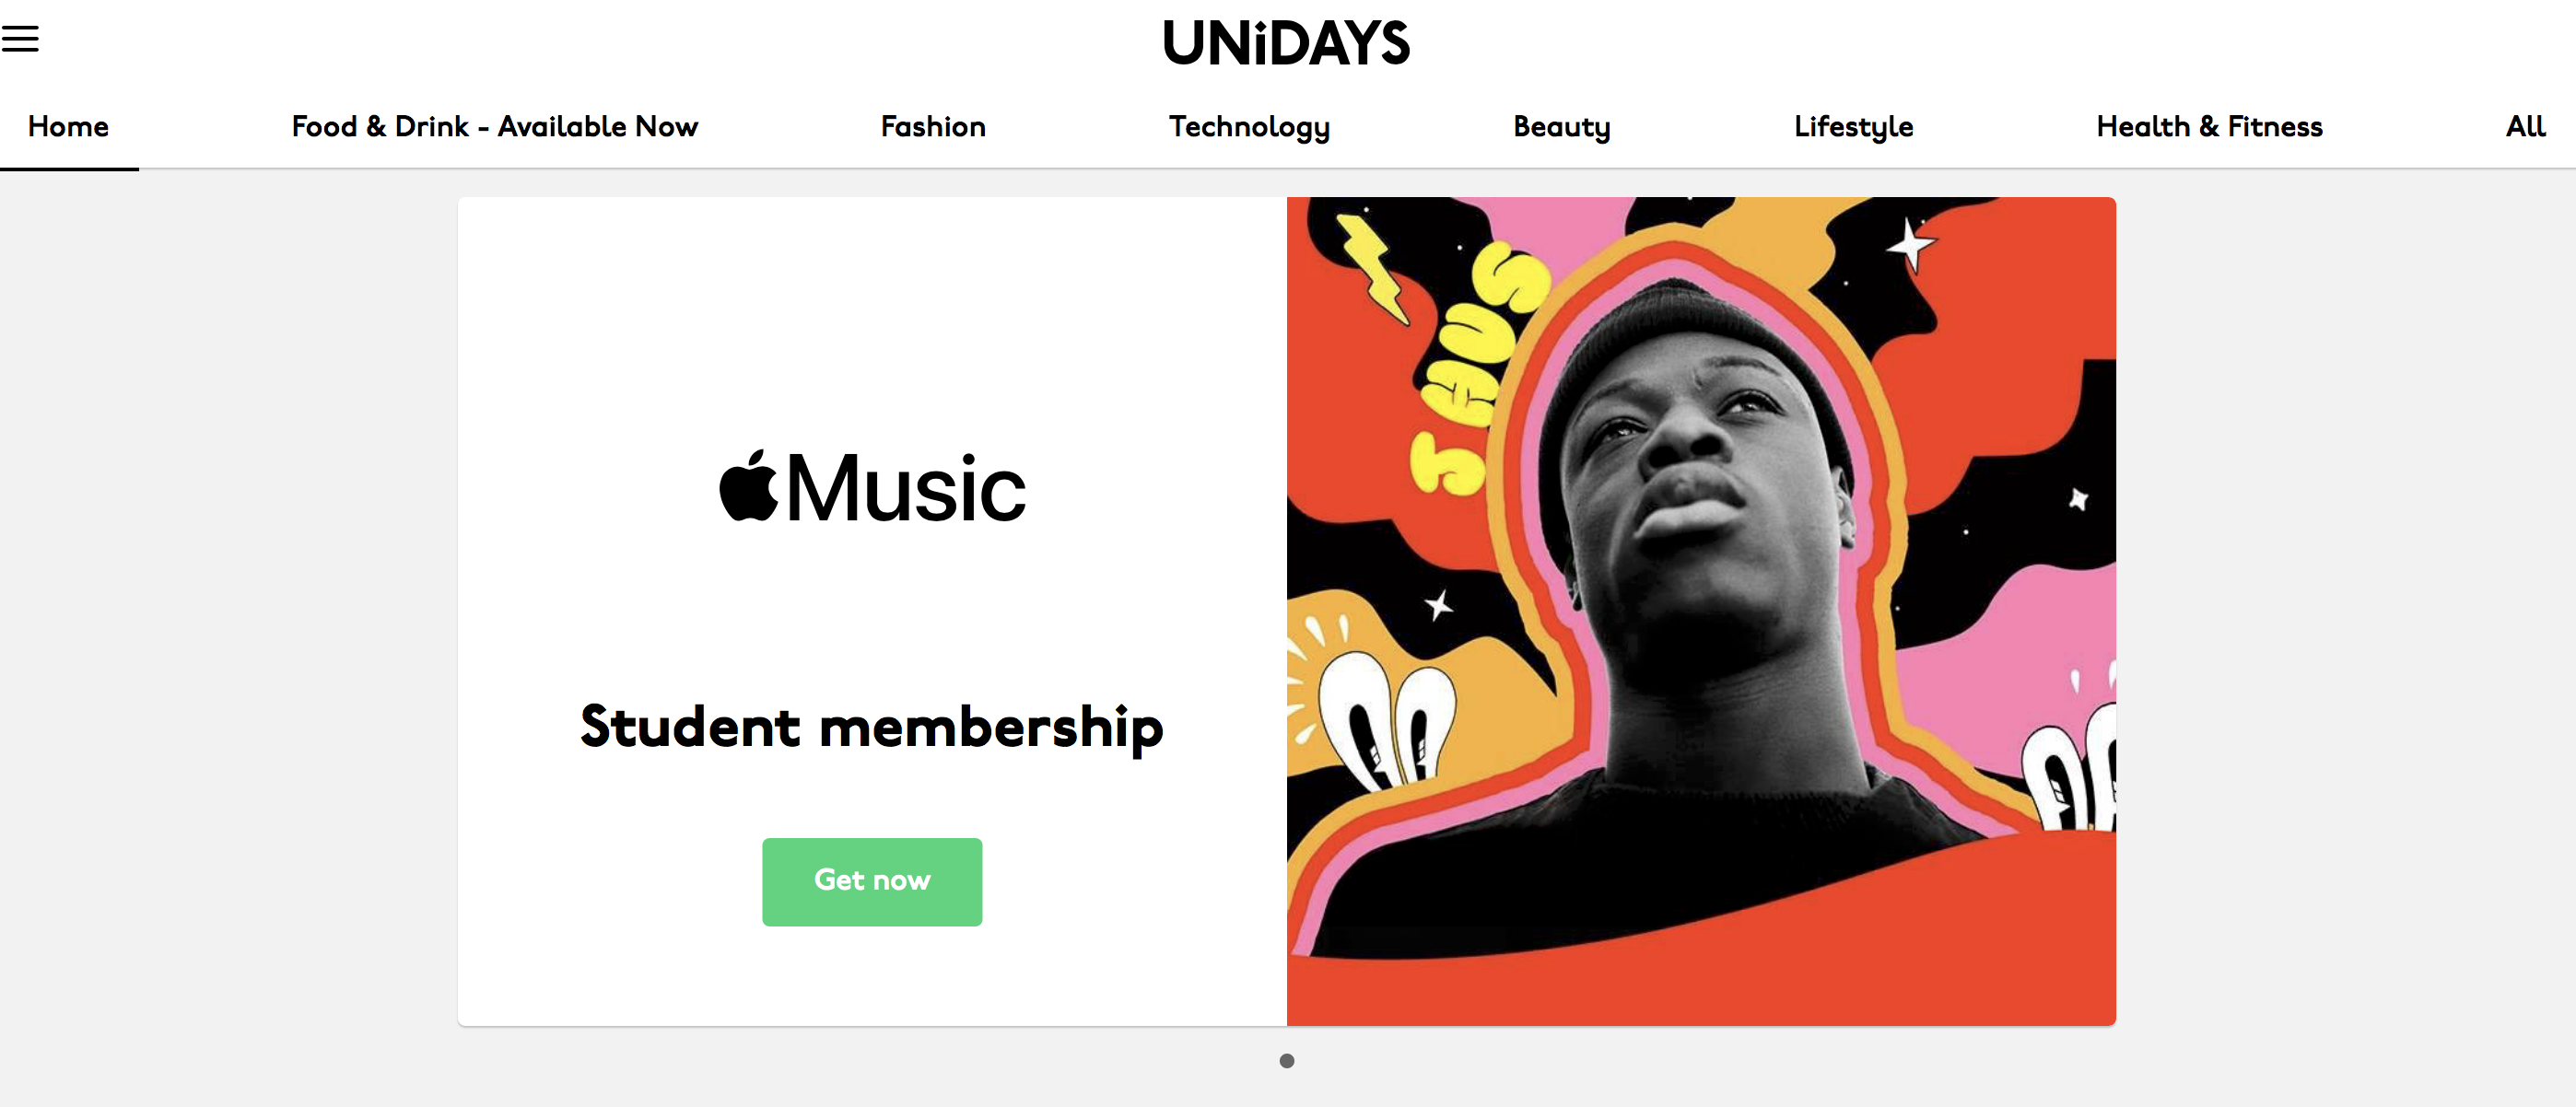 UNiDAYS' homepage featuring all the categories it covers student discounts on.